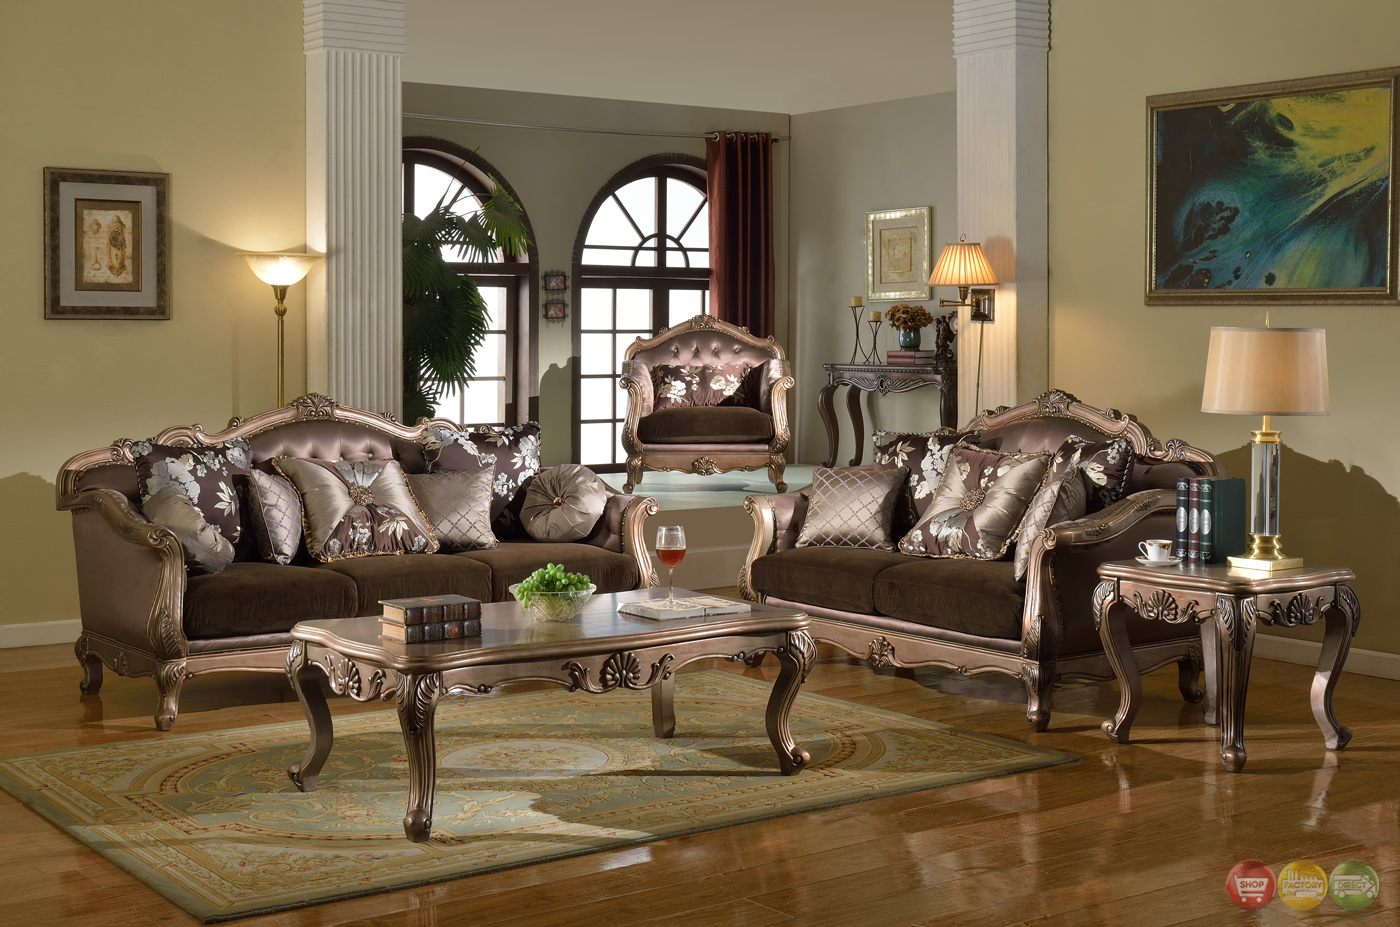 Inspirational Antique Style Sofa 61 On Modern Sofa Ideas with Antique Style Sofa